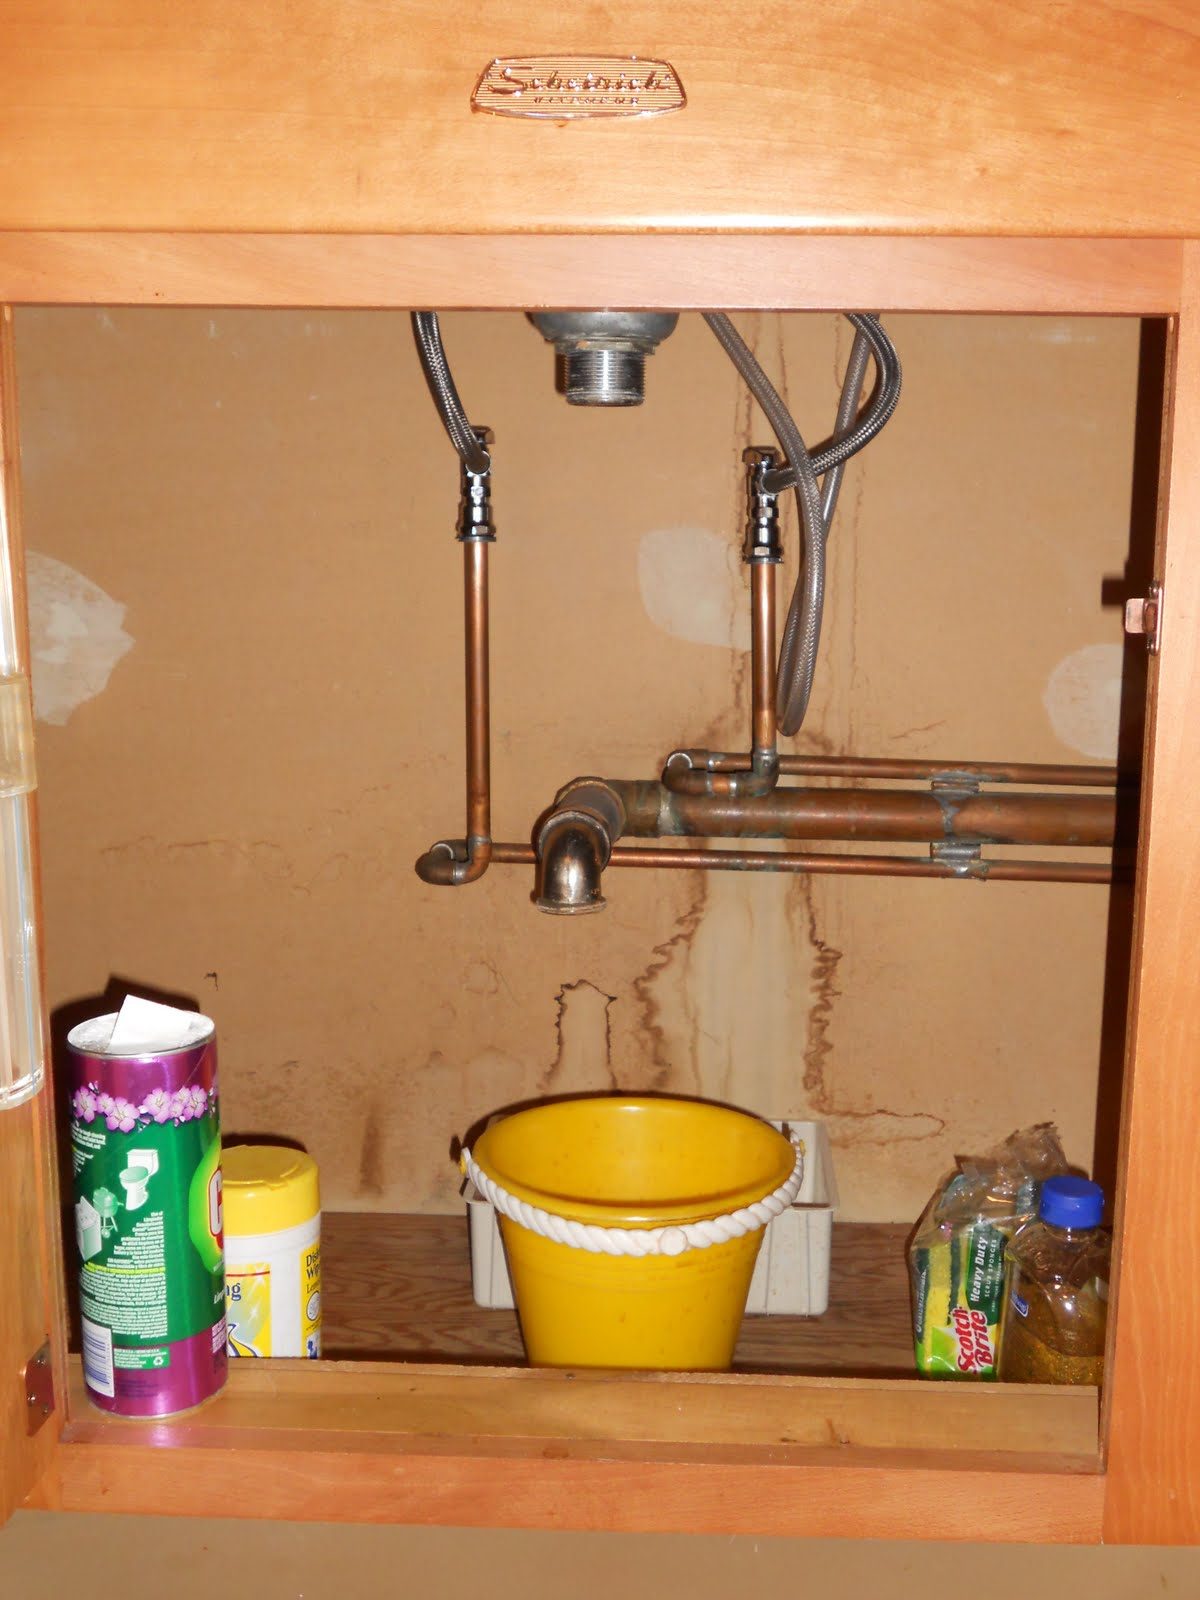 How to fix leaky pipes under your kitchen sink